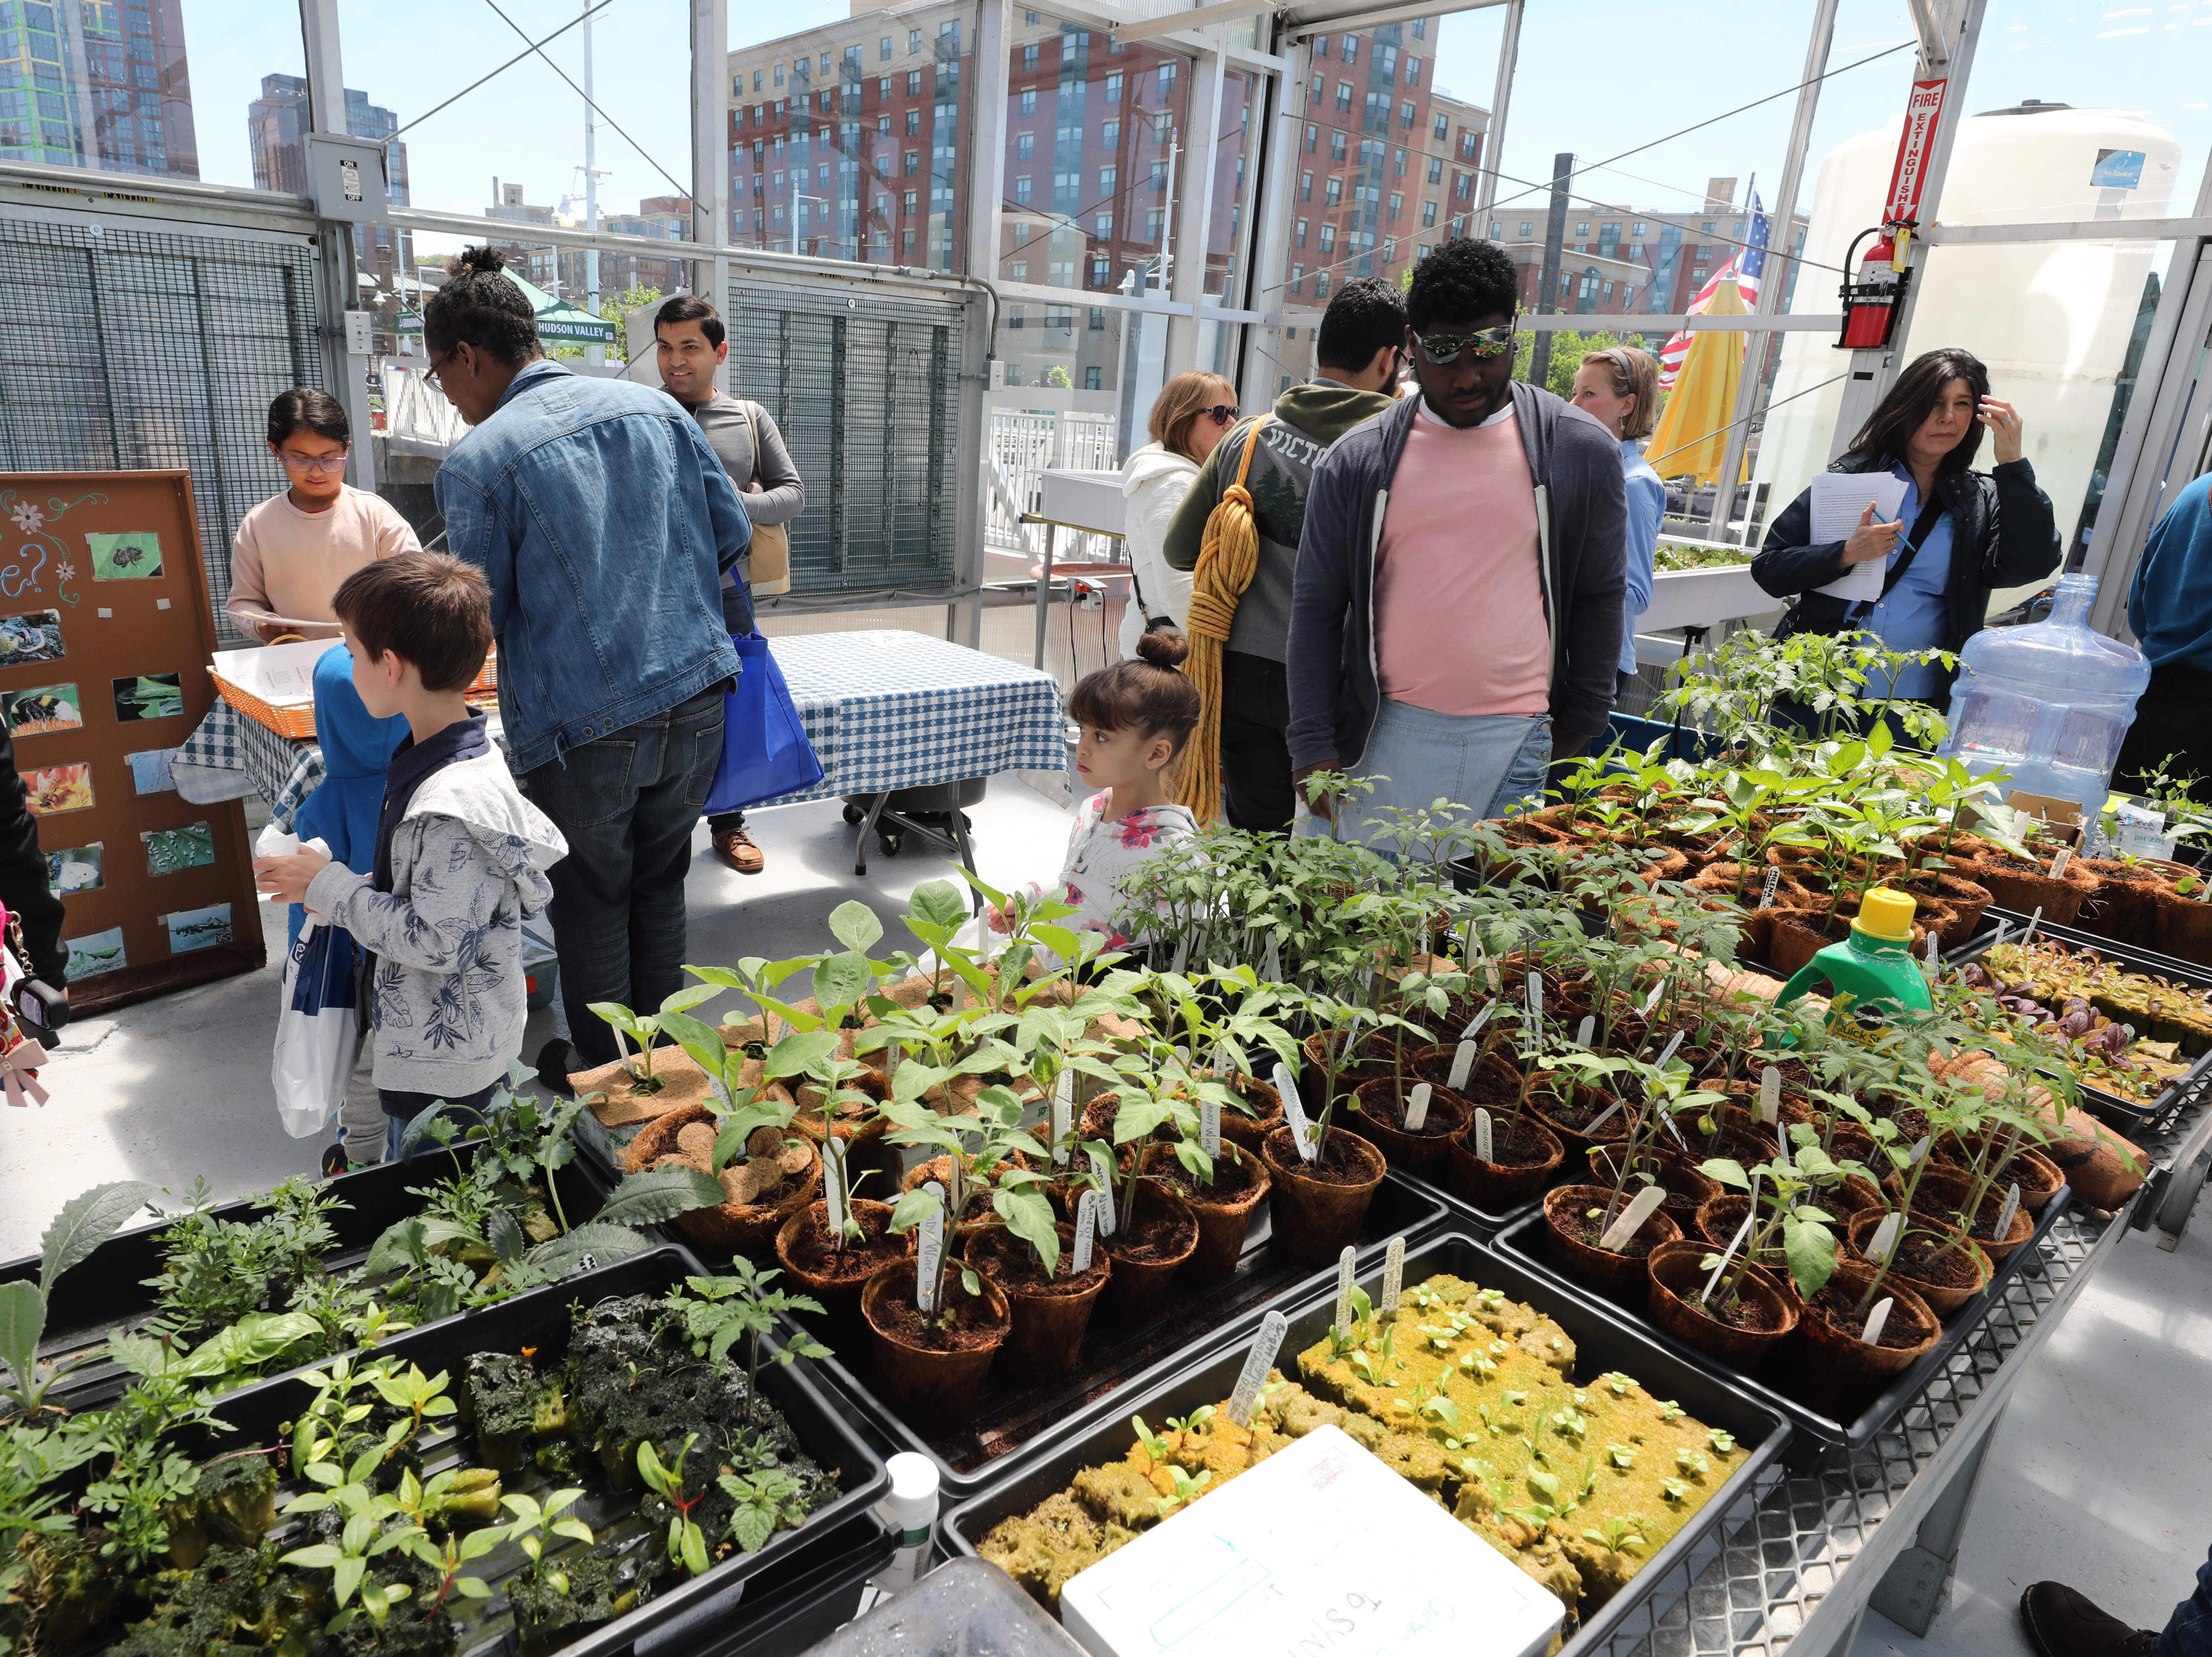 Plants grow on the Science Barge as people take a tour during the 11th annual opening on the Hudson River in Yonkers, May 11, 2019. The floating environmental education center has undergone an almost $1million enhancement, completed over the past two years.